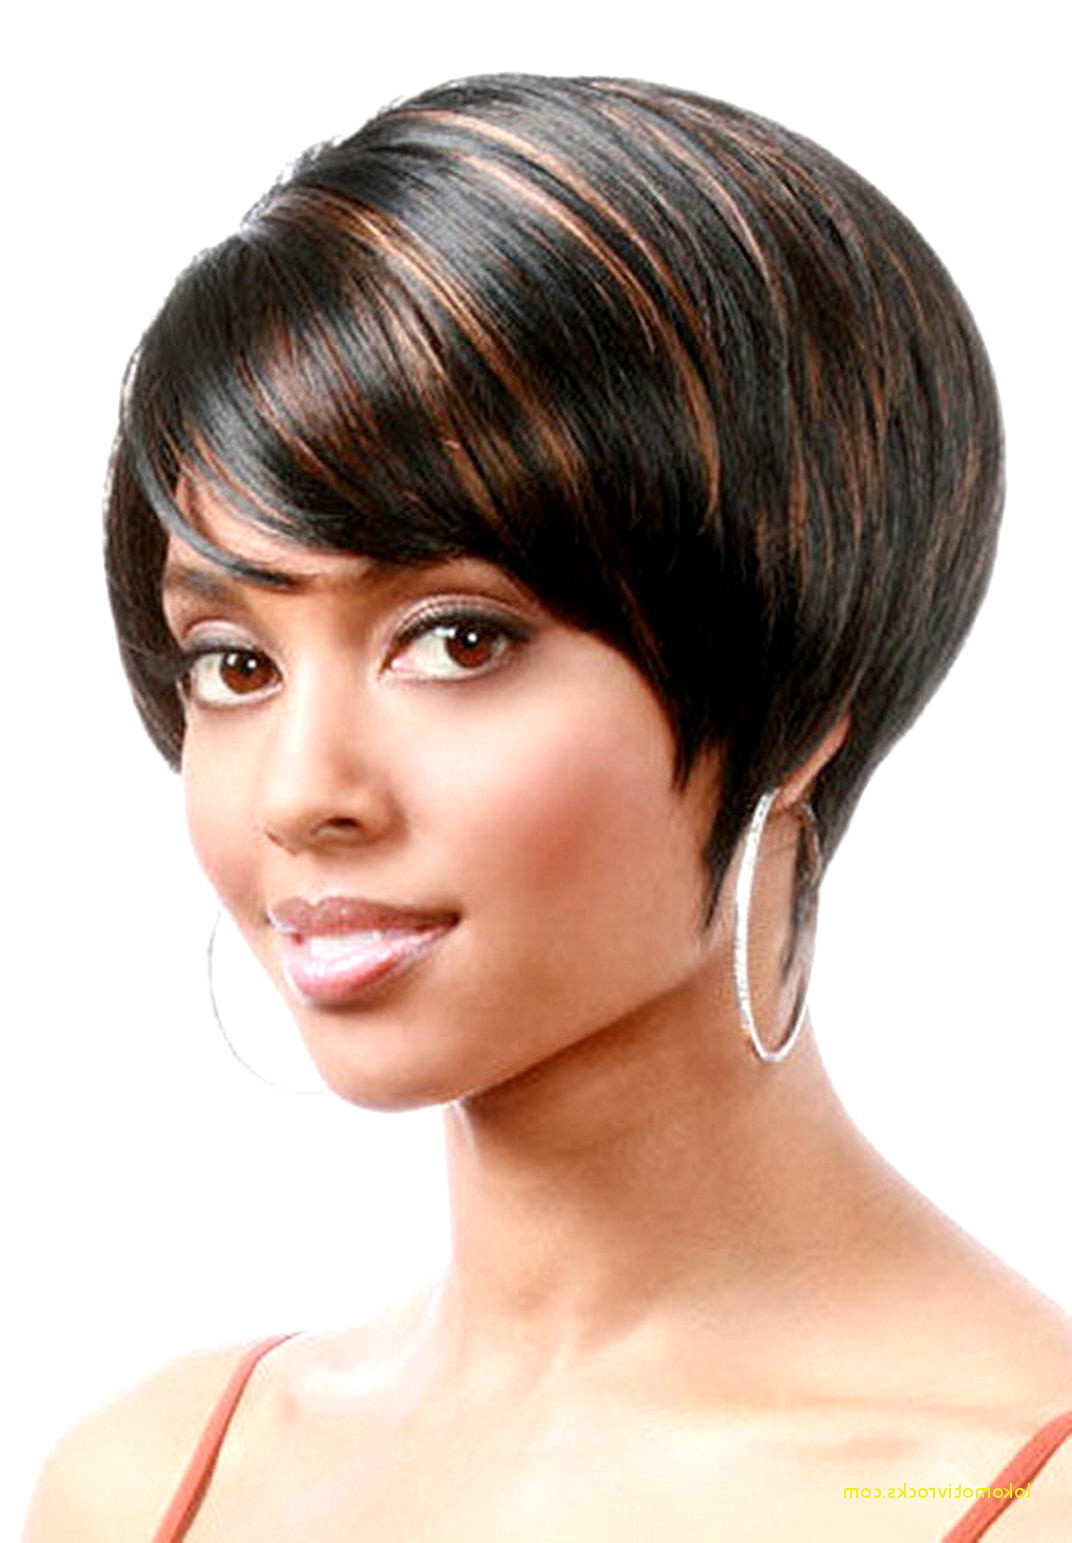 Top Result 50 Beautiful Short Bob Hairstyles For Black Women Photos Pertaining To Cute Short Hairstyles For Black Women (View 25 of 25)